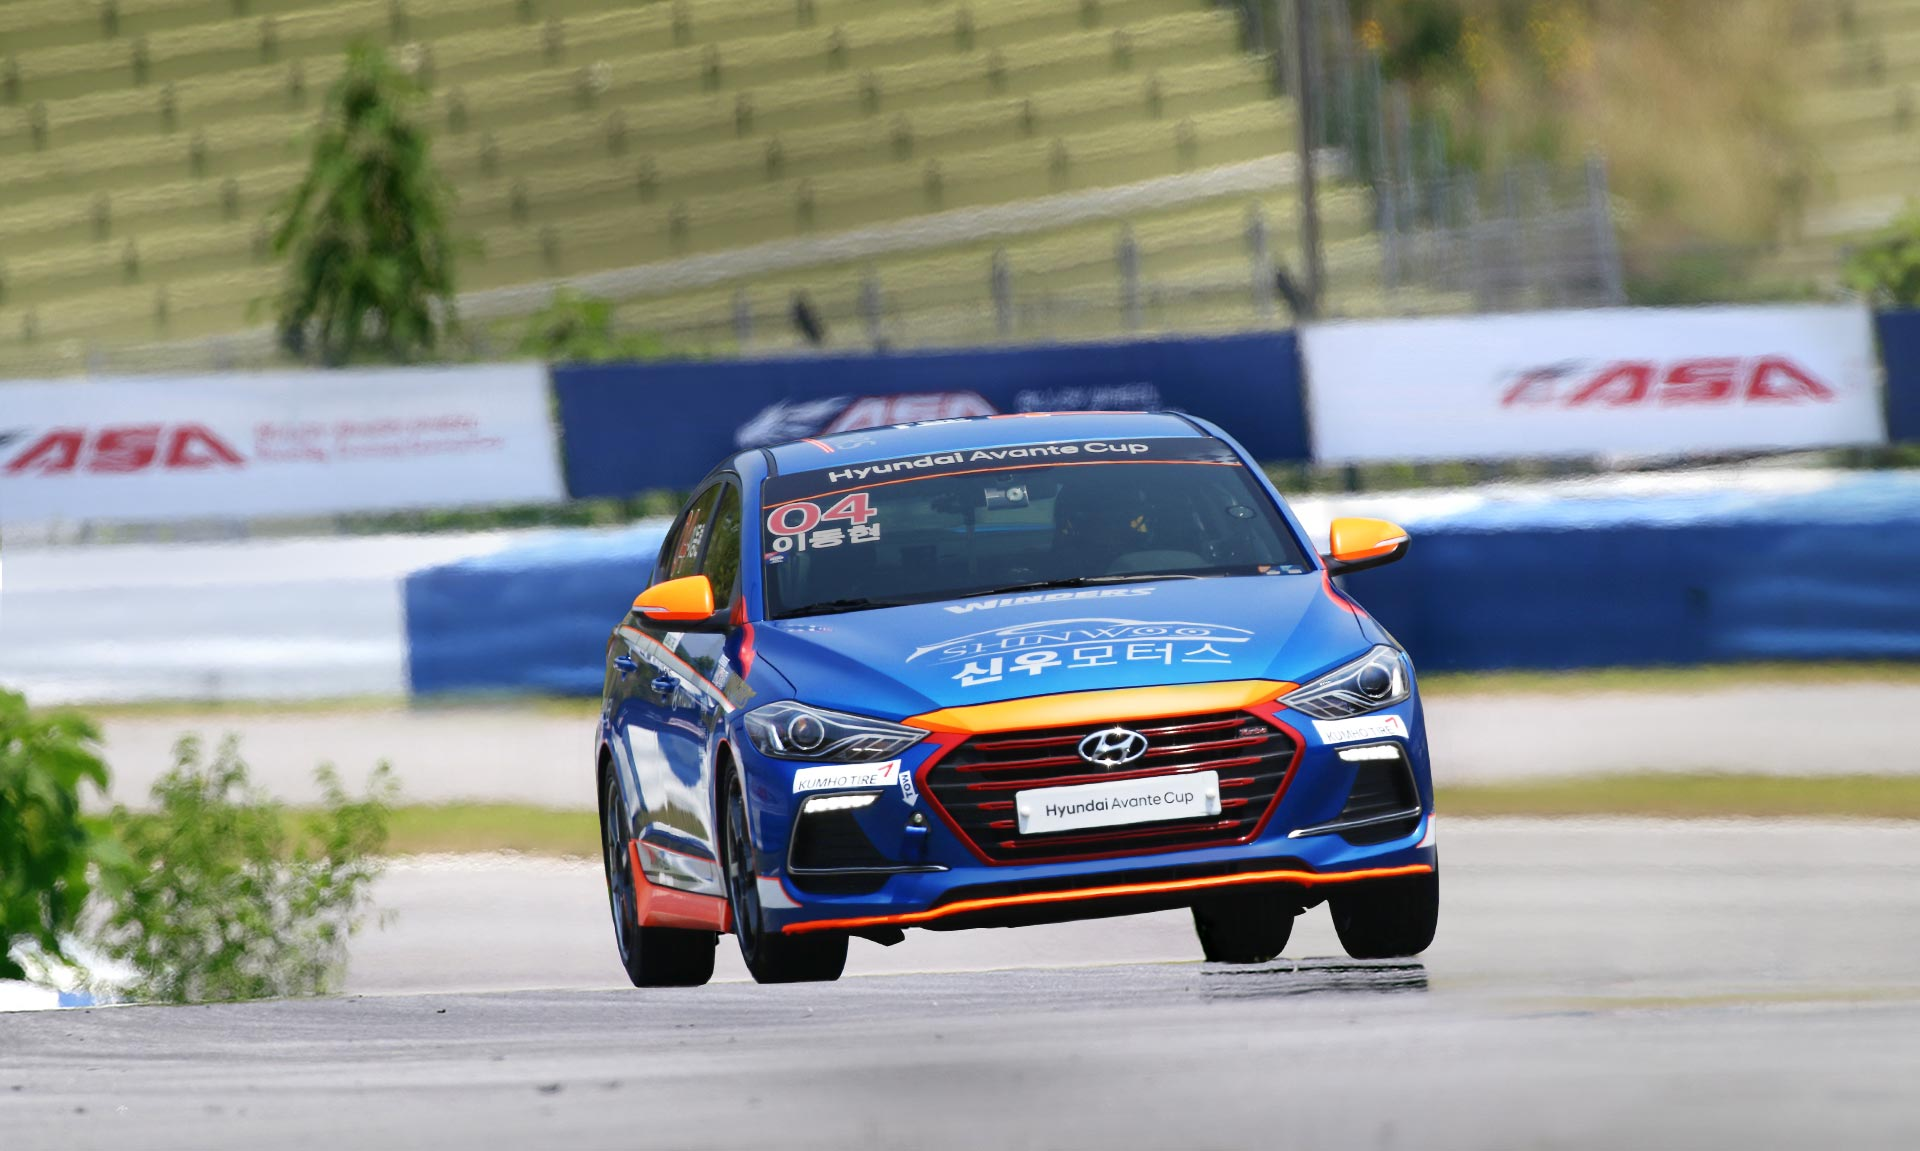 front view of blue and orange racing car on track